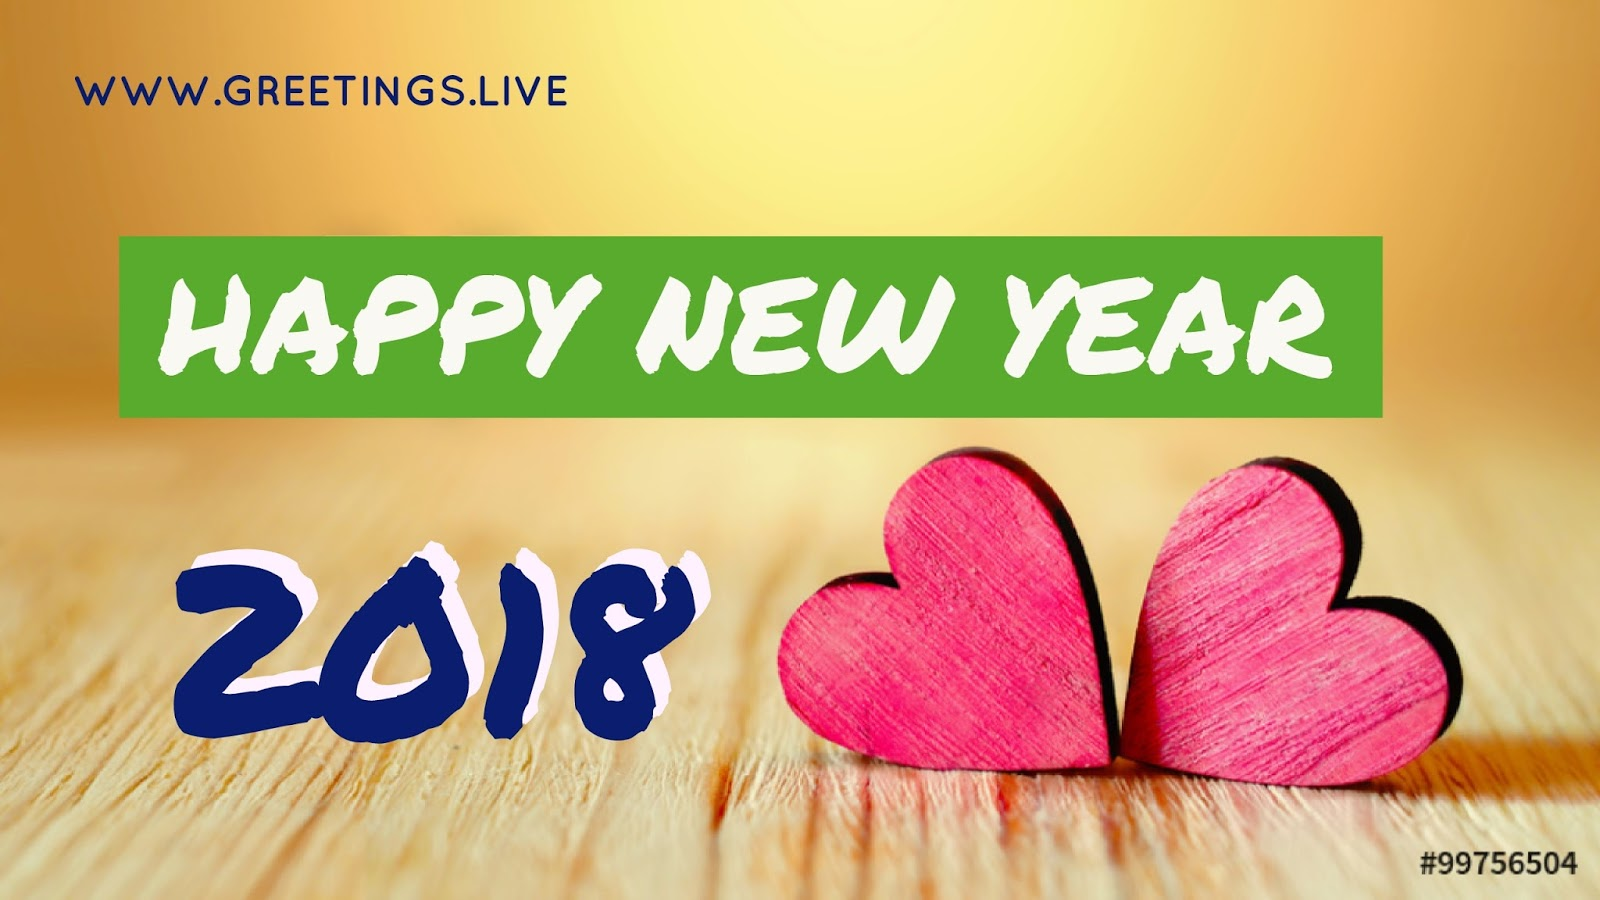 Greetingsve free hd images to express wishes all occasions pink two loving hearts happy new year image in englishg m4hsunfo